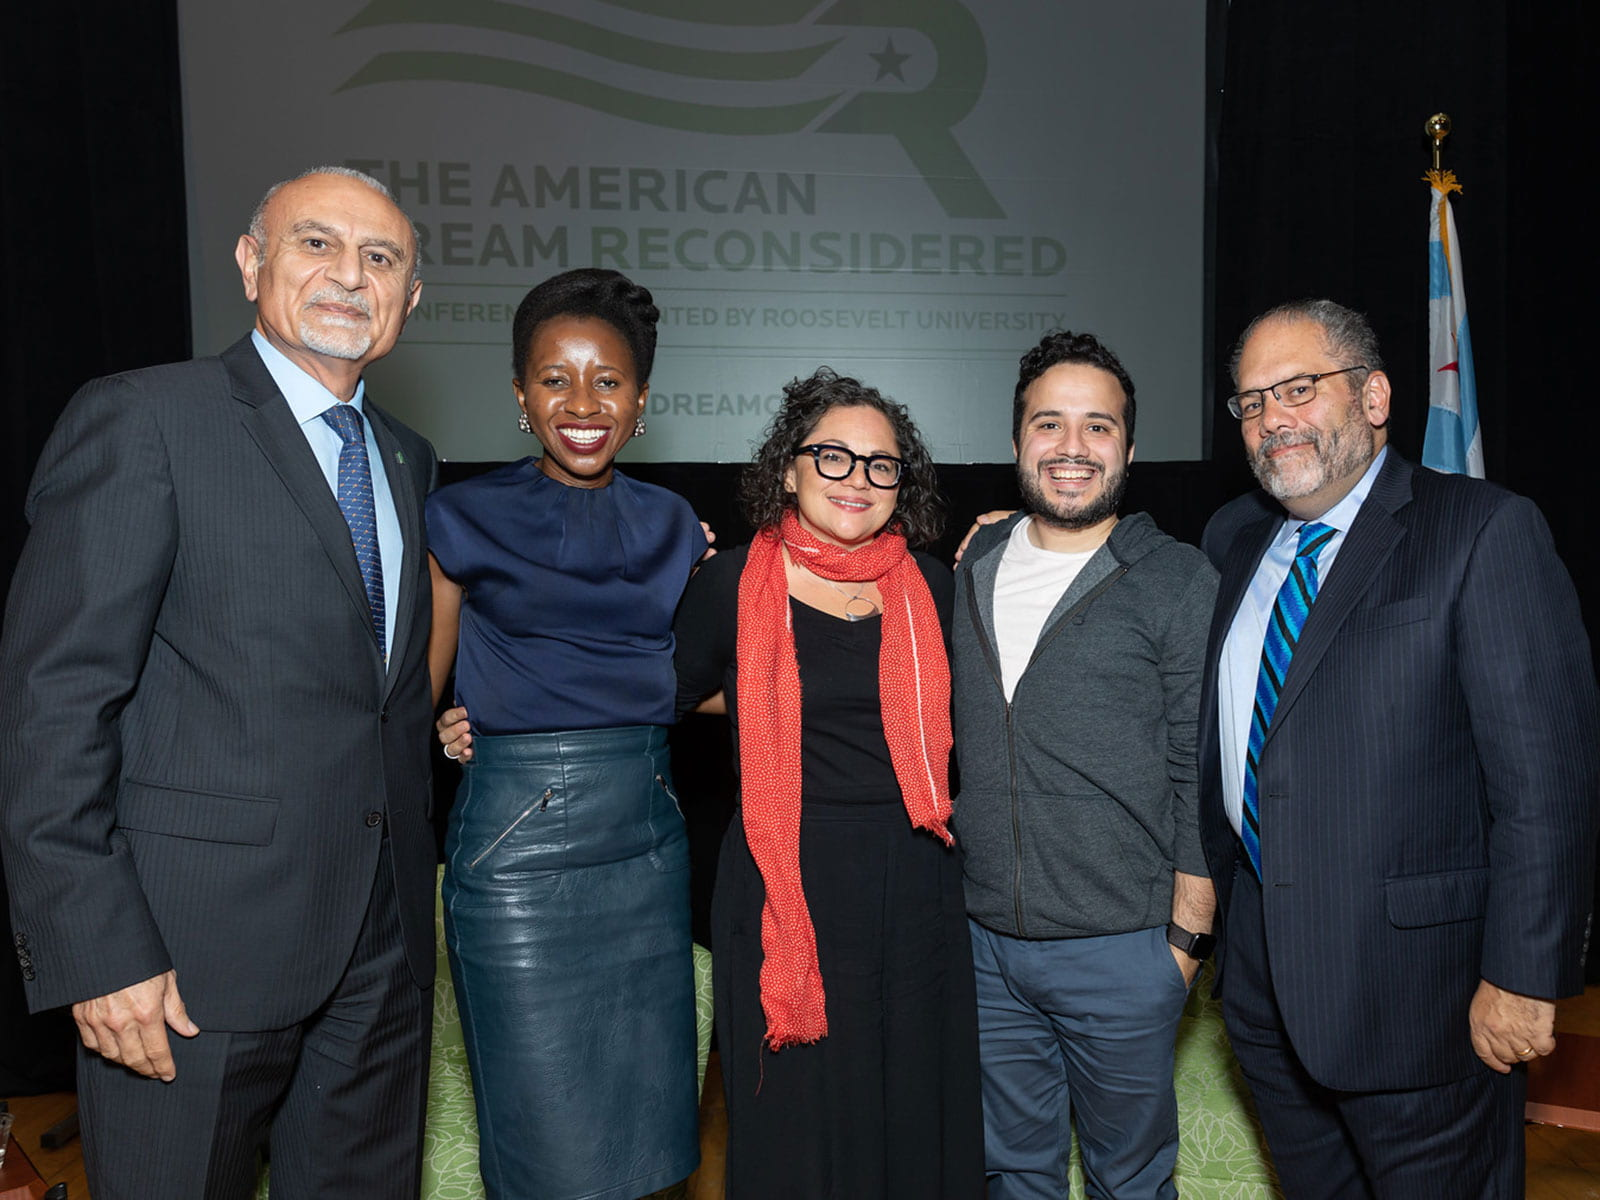 From left to right: President Ali Malekzadeh, Imbolo Mbue, Mony Ruiz-Velasco, Juan Escalante and Ray Suarez